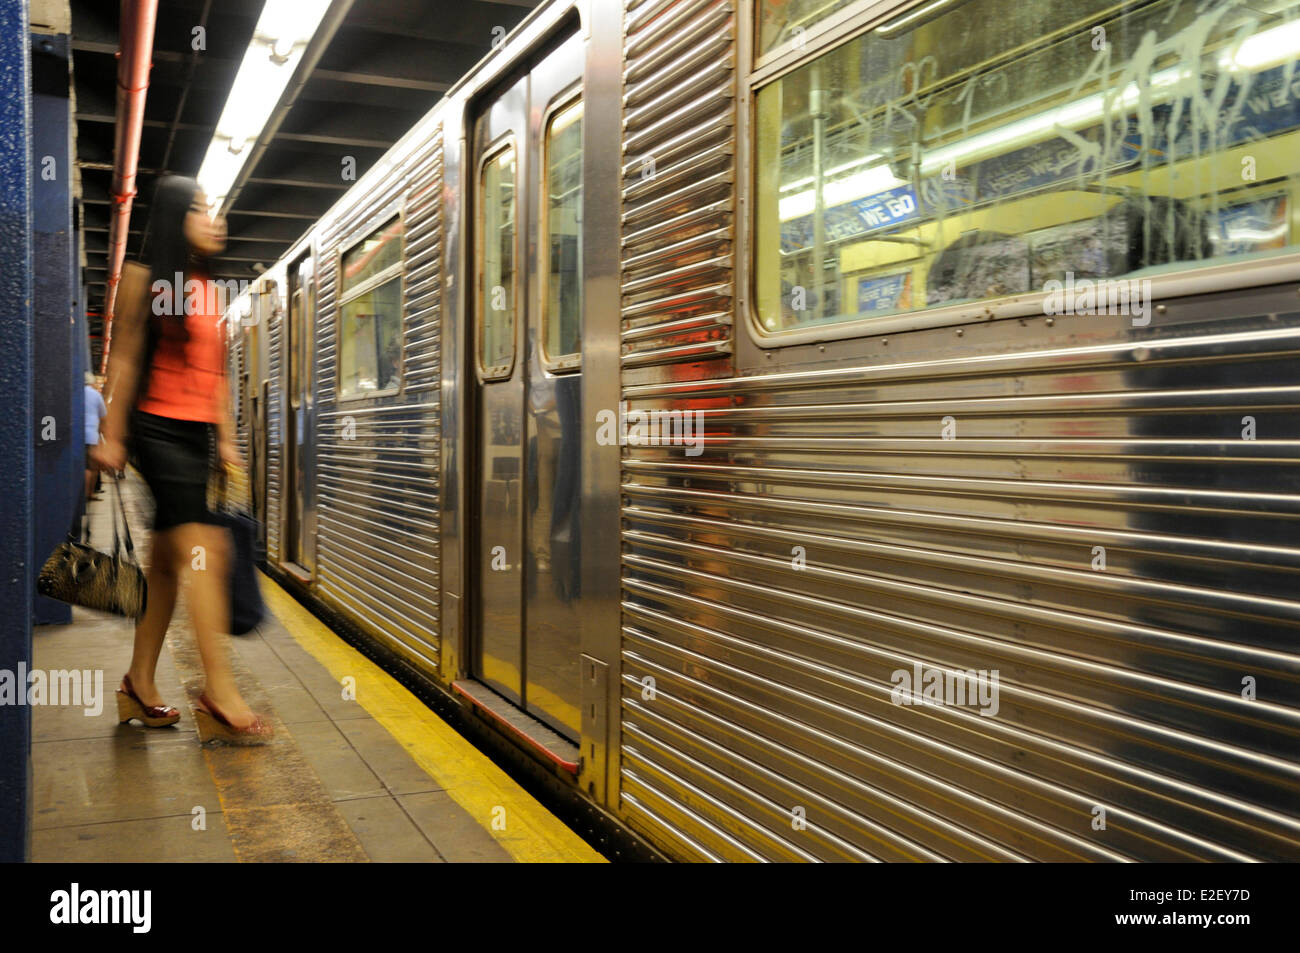 United States, New York, subway station Central Park West, young woman on the platform - Stock Image